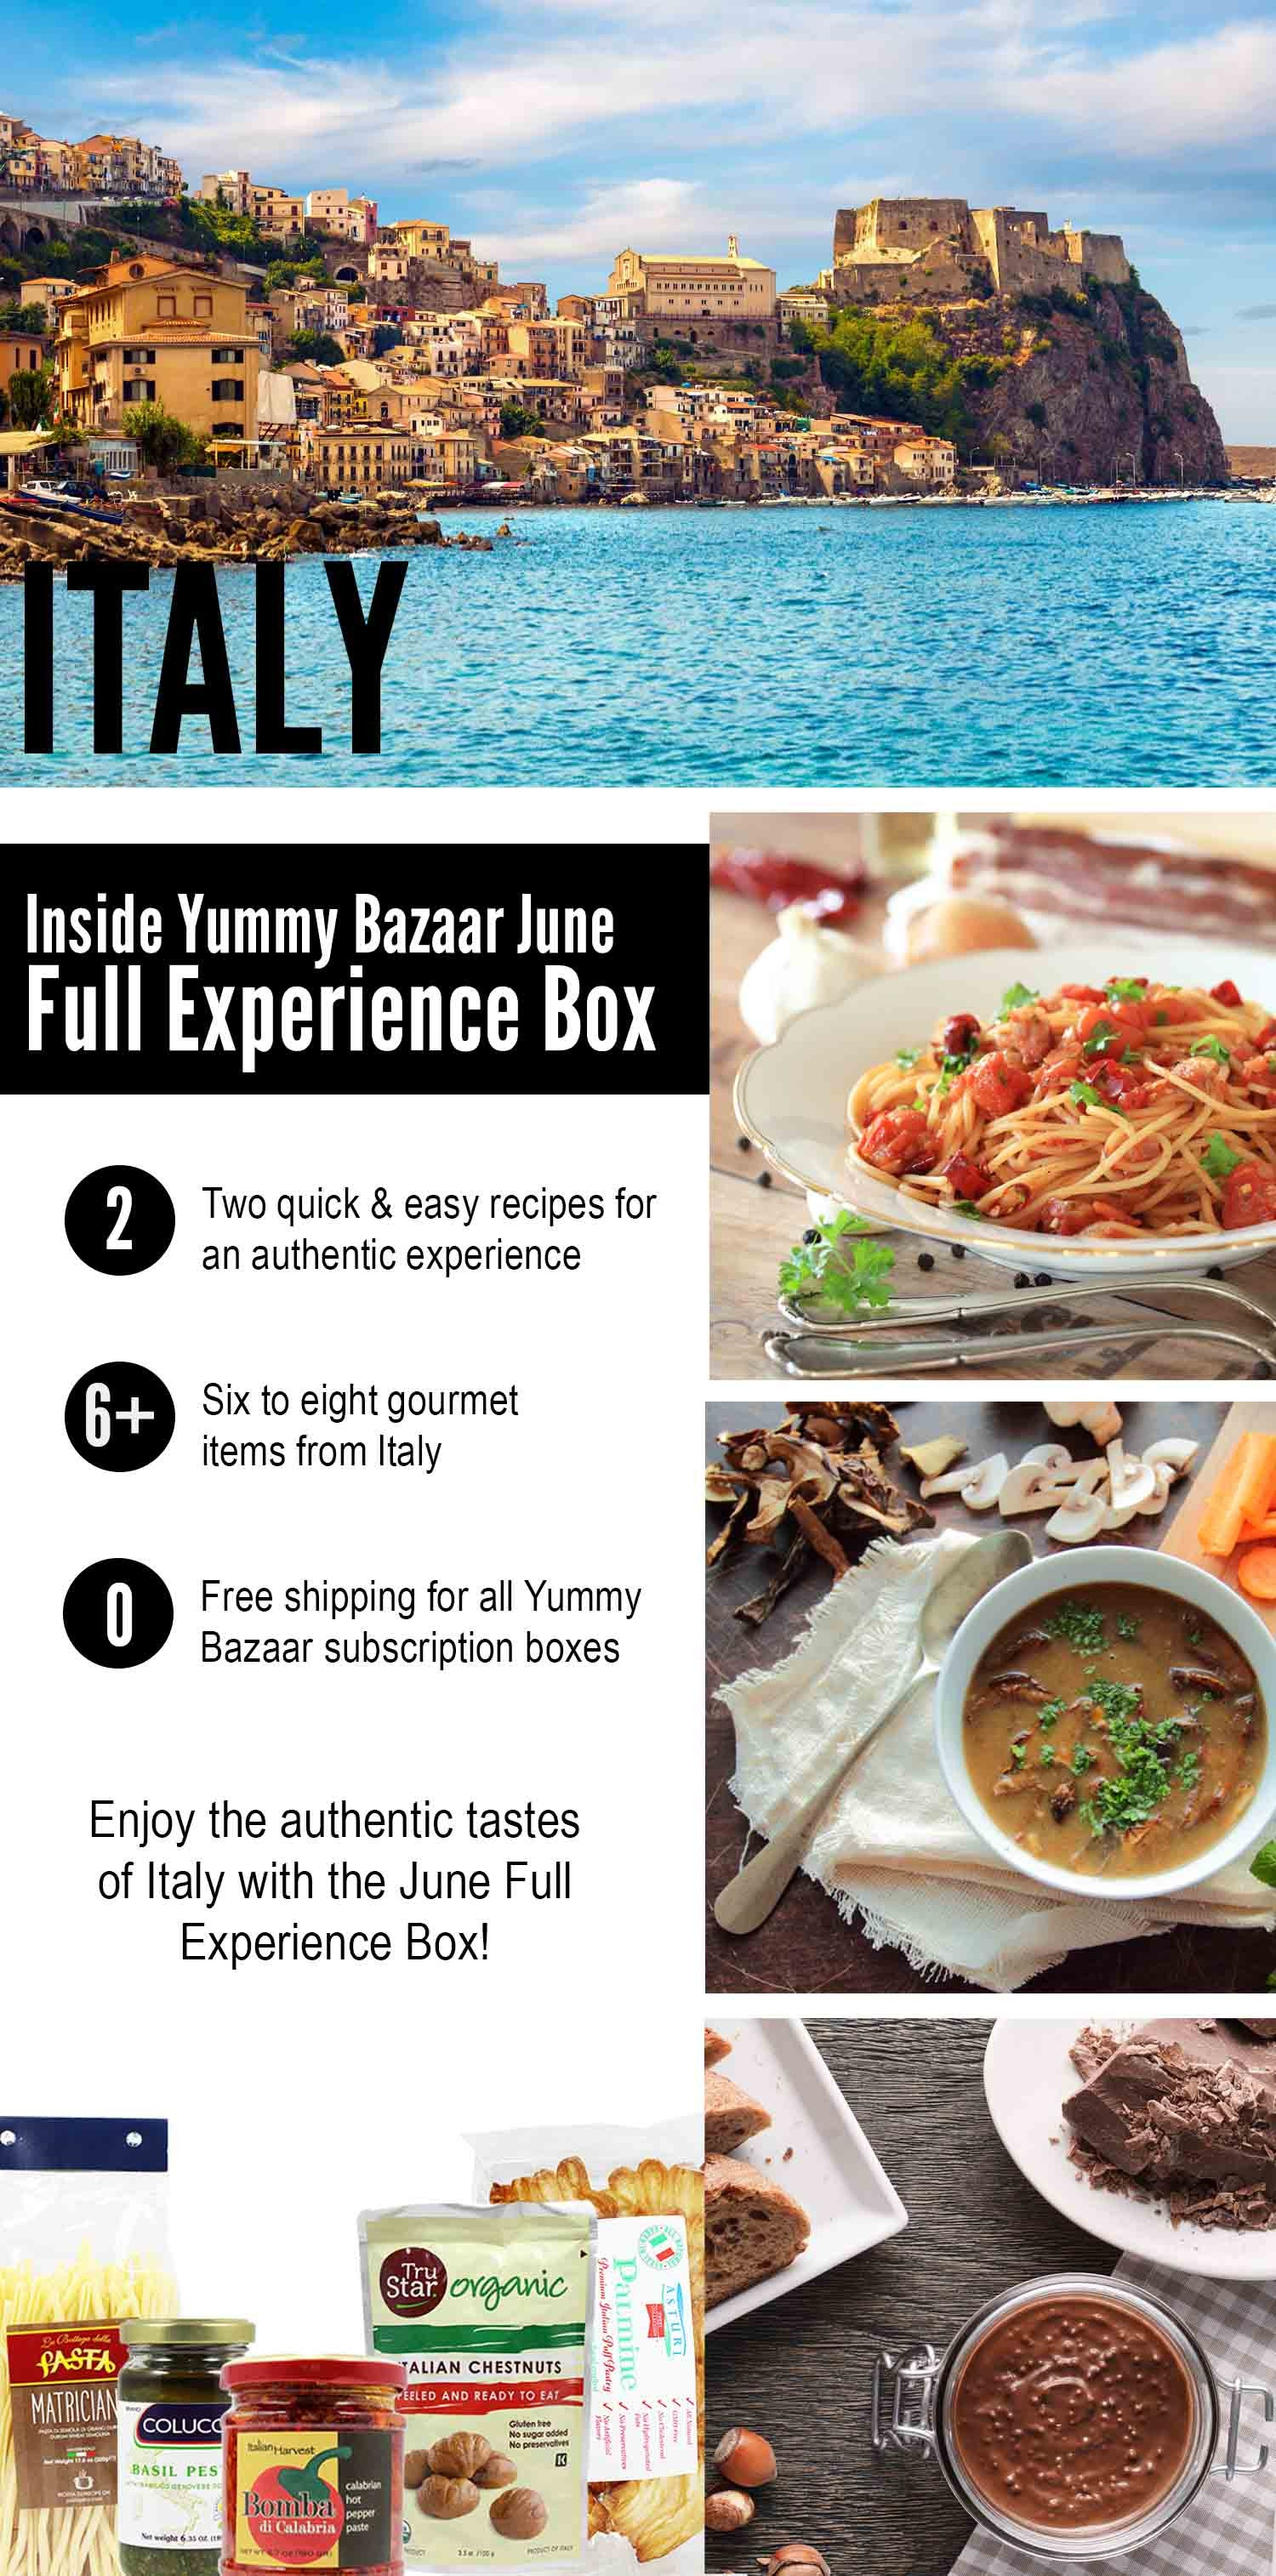 Discover June Full Experience Gourmet Box